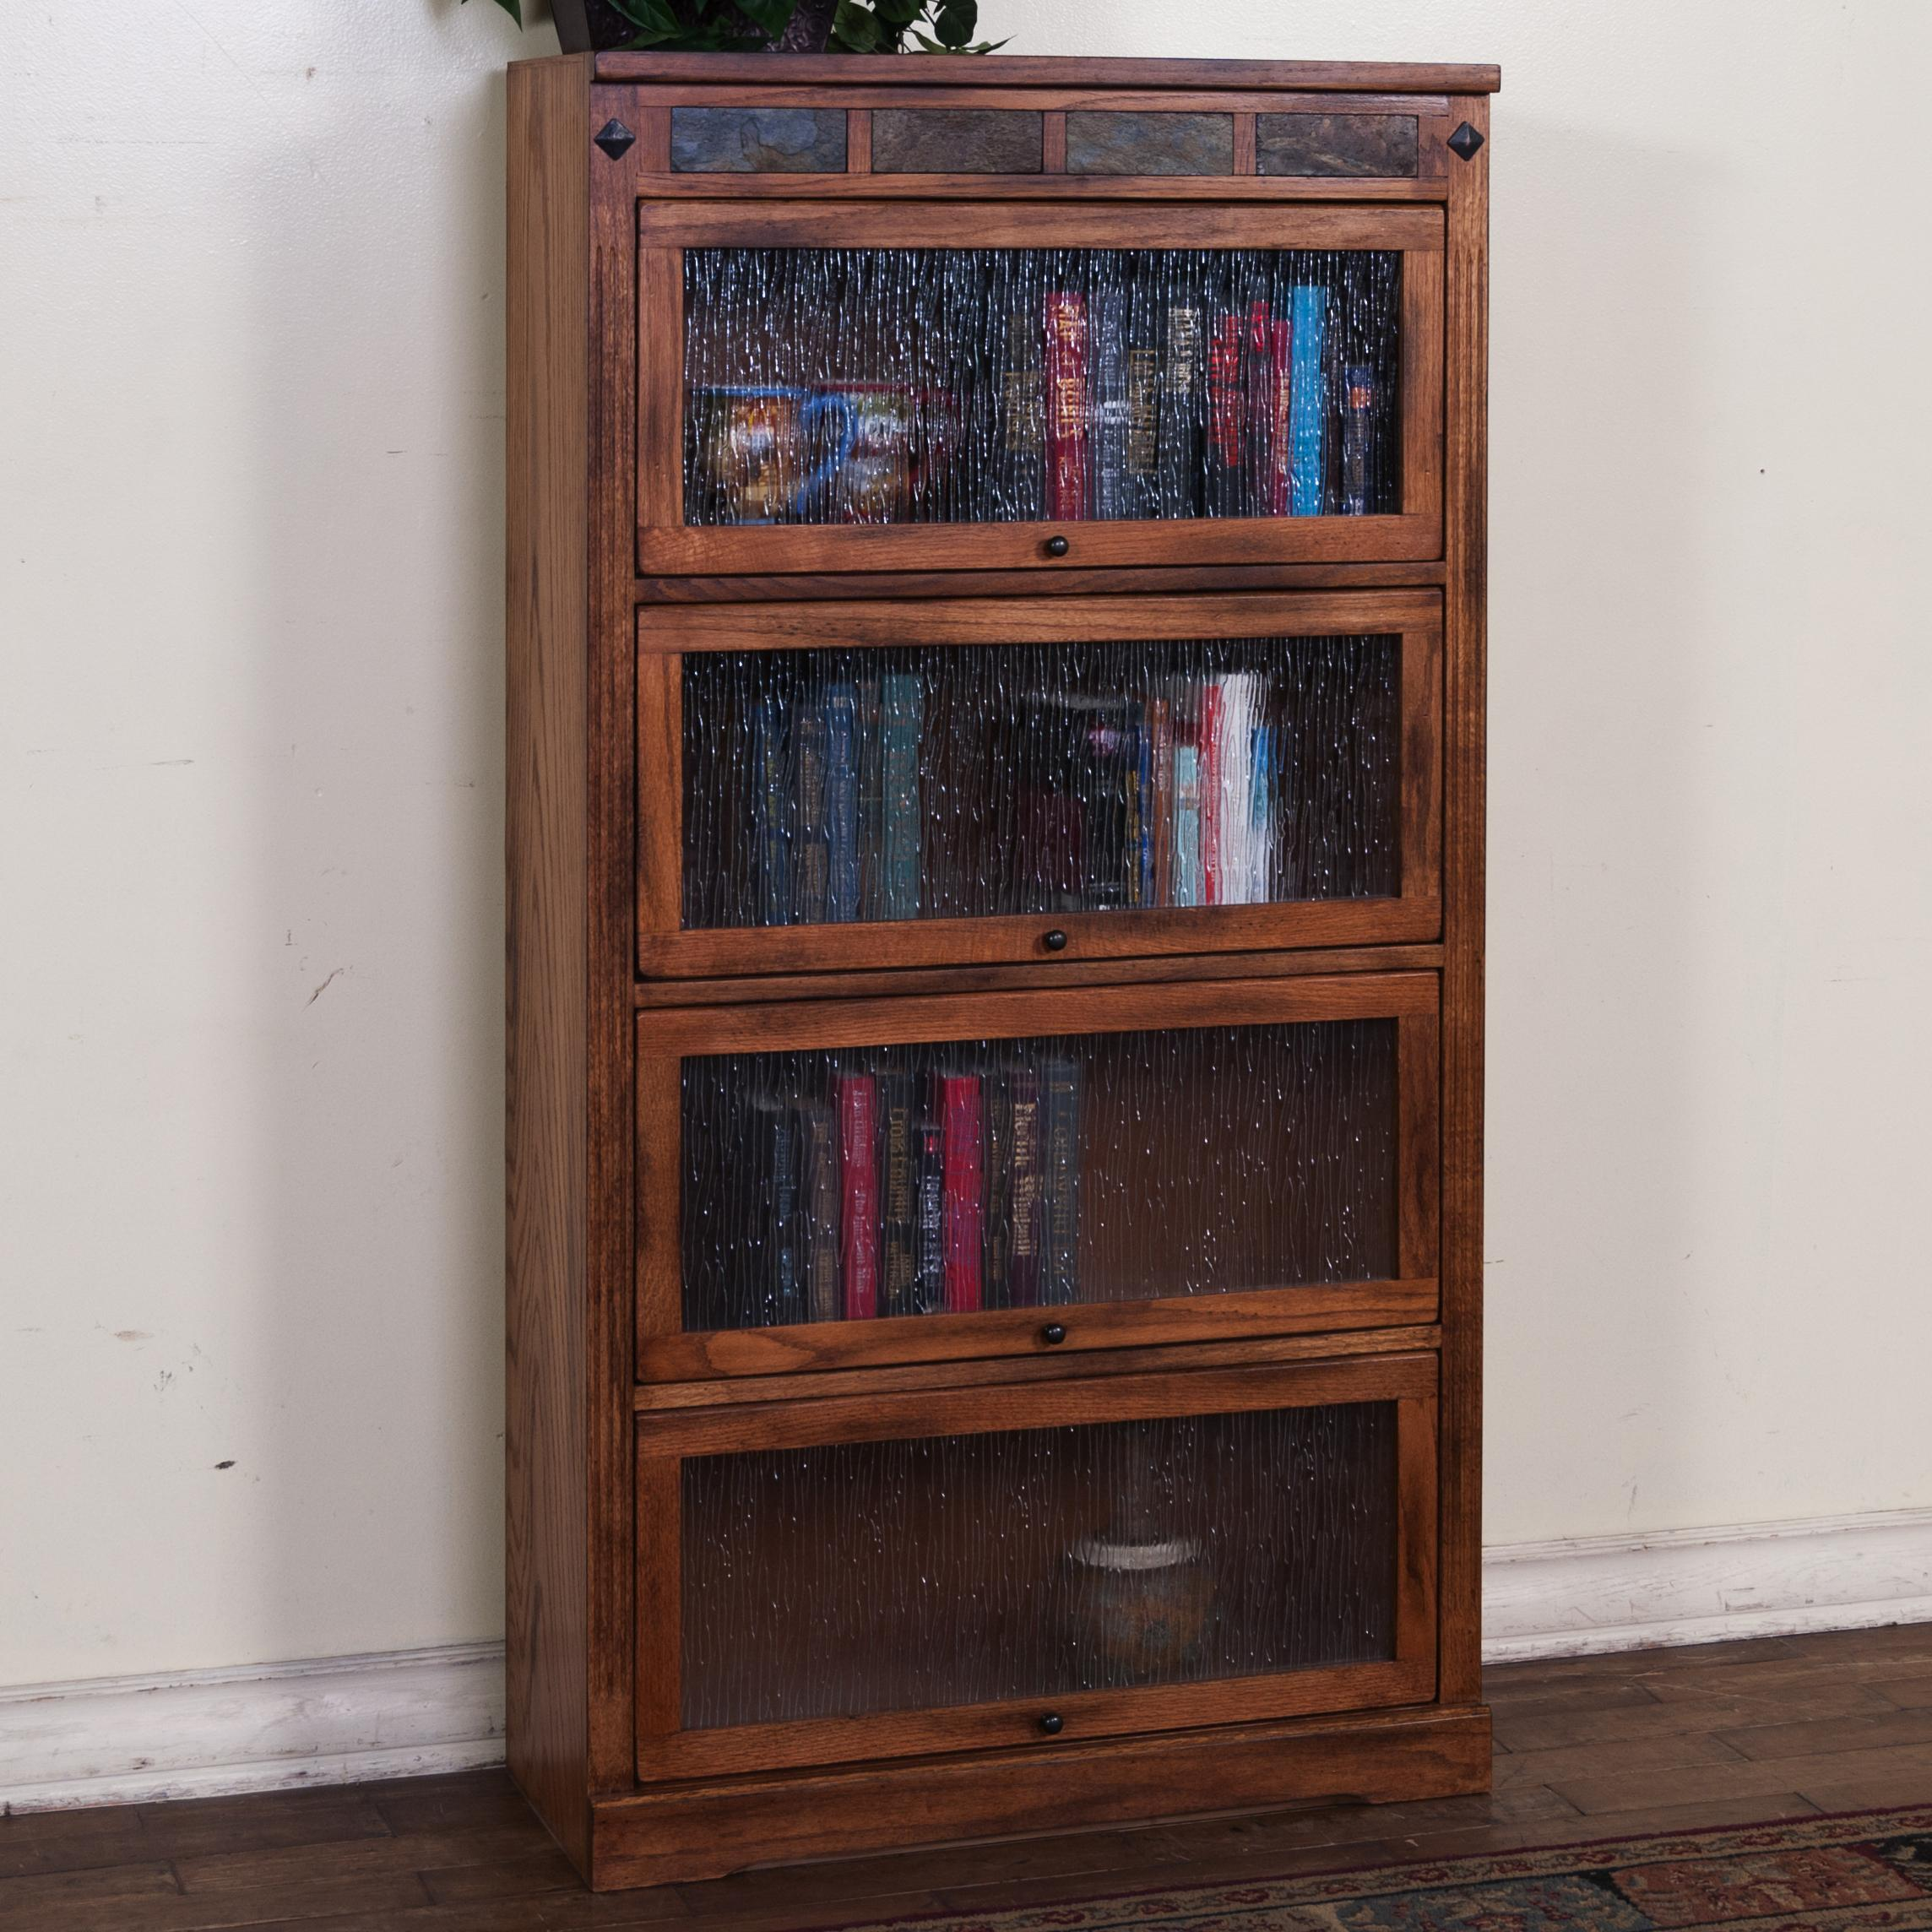 Morris Home Furnishings From Morris Home Furnishings - Rugby Road Lawyers Bookcase - Item Number: 2952RO-L4